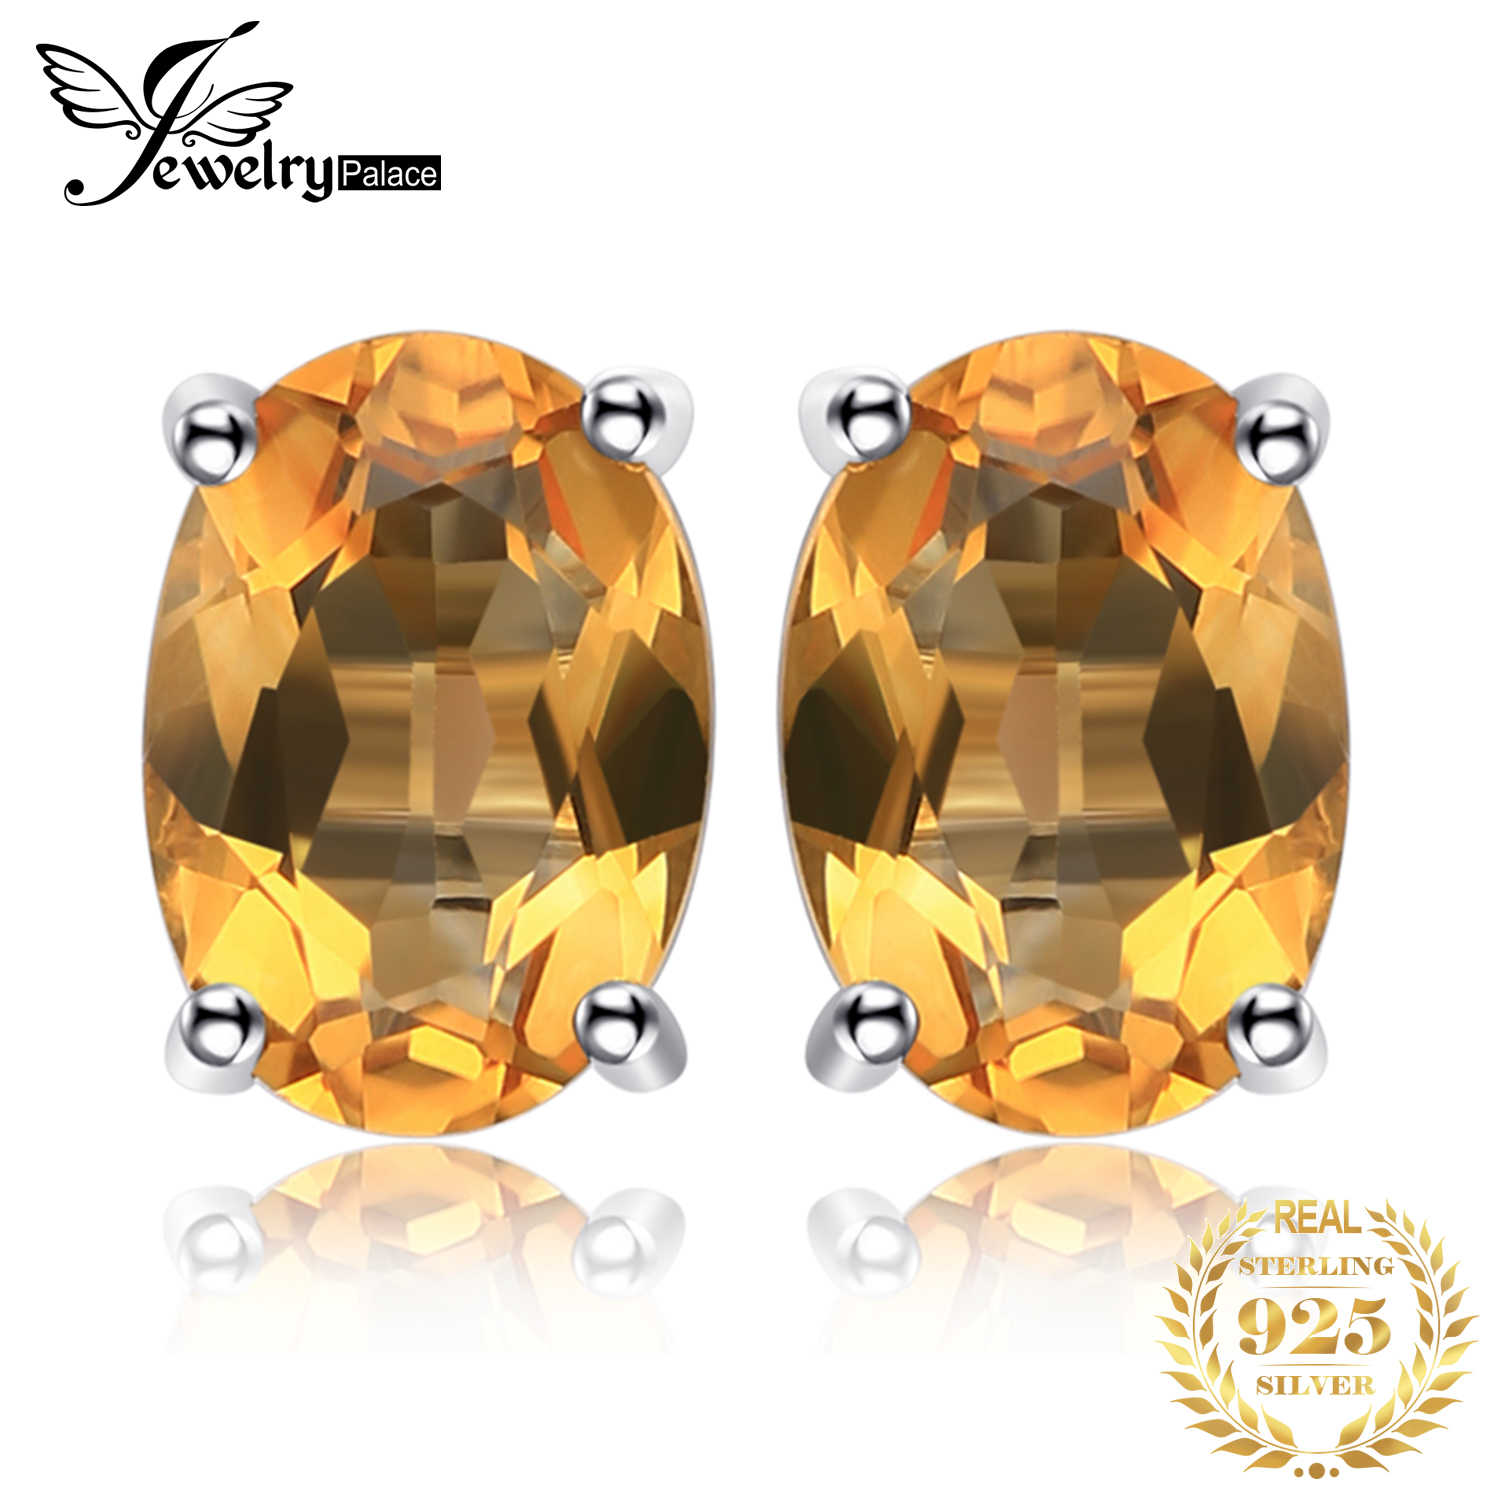 JewelryPalace 1.4ct Genuine Citrine Stud Earrings 925 Sterling Silver Earrings For Women Korean Earings Fashion Jewelry 2019